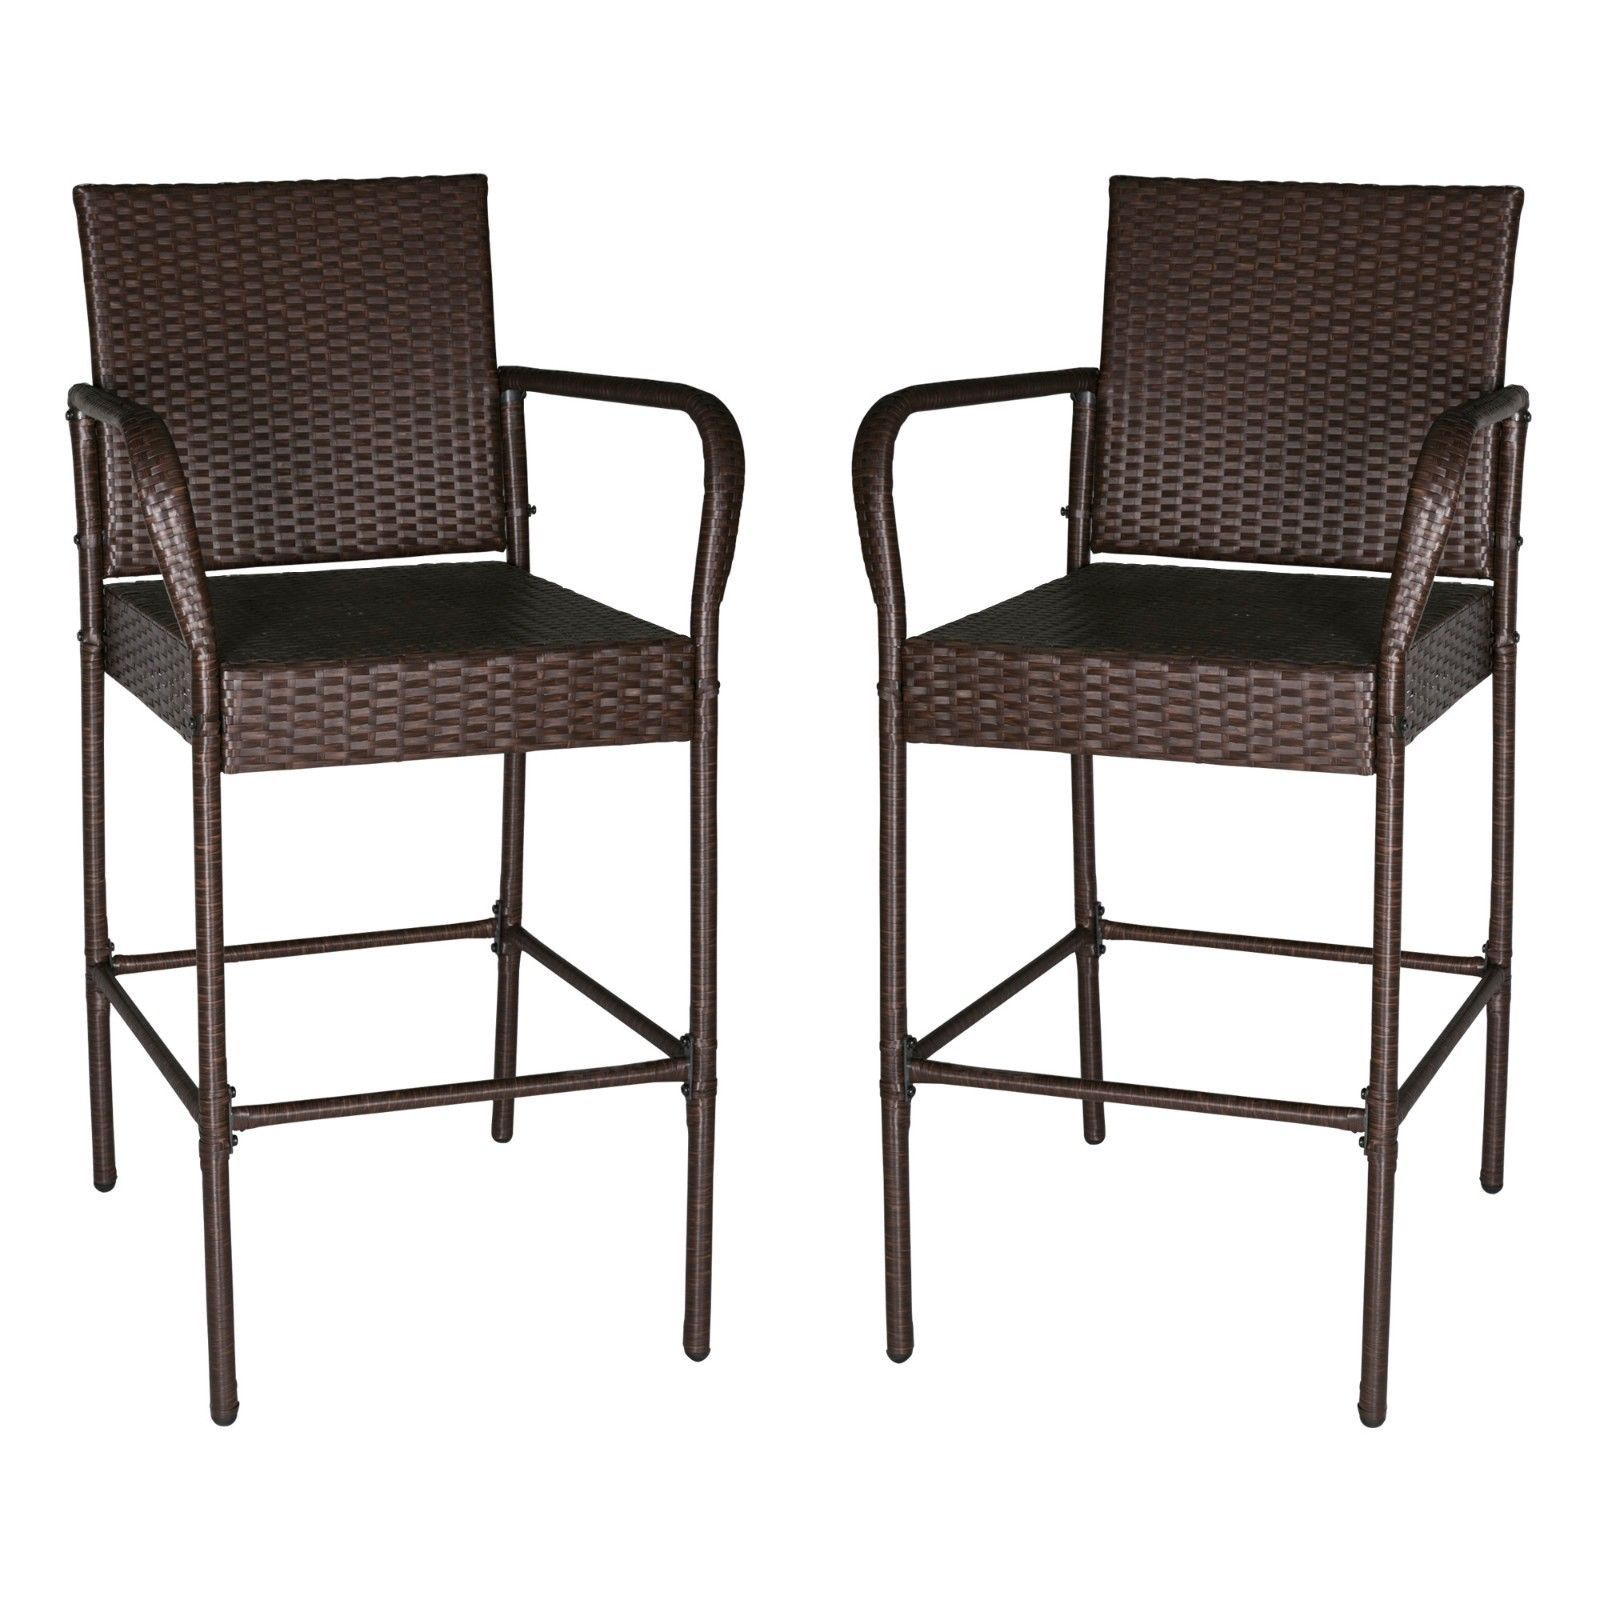 Set of 2 Outdoor Wicker Bar Stool Outdoor Patio Furniture Bar Chairs, Brown